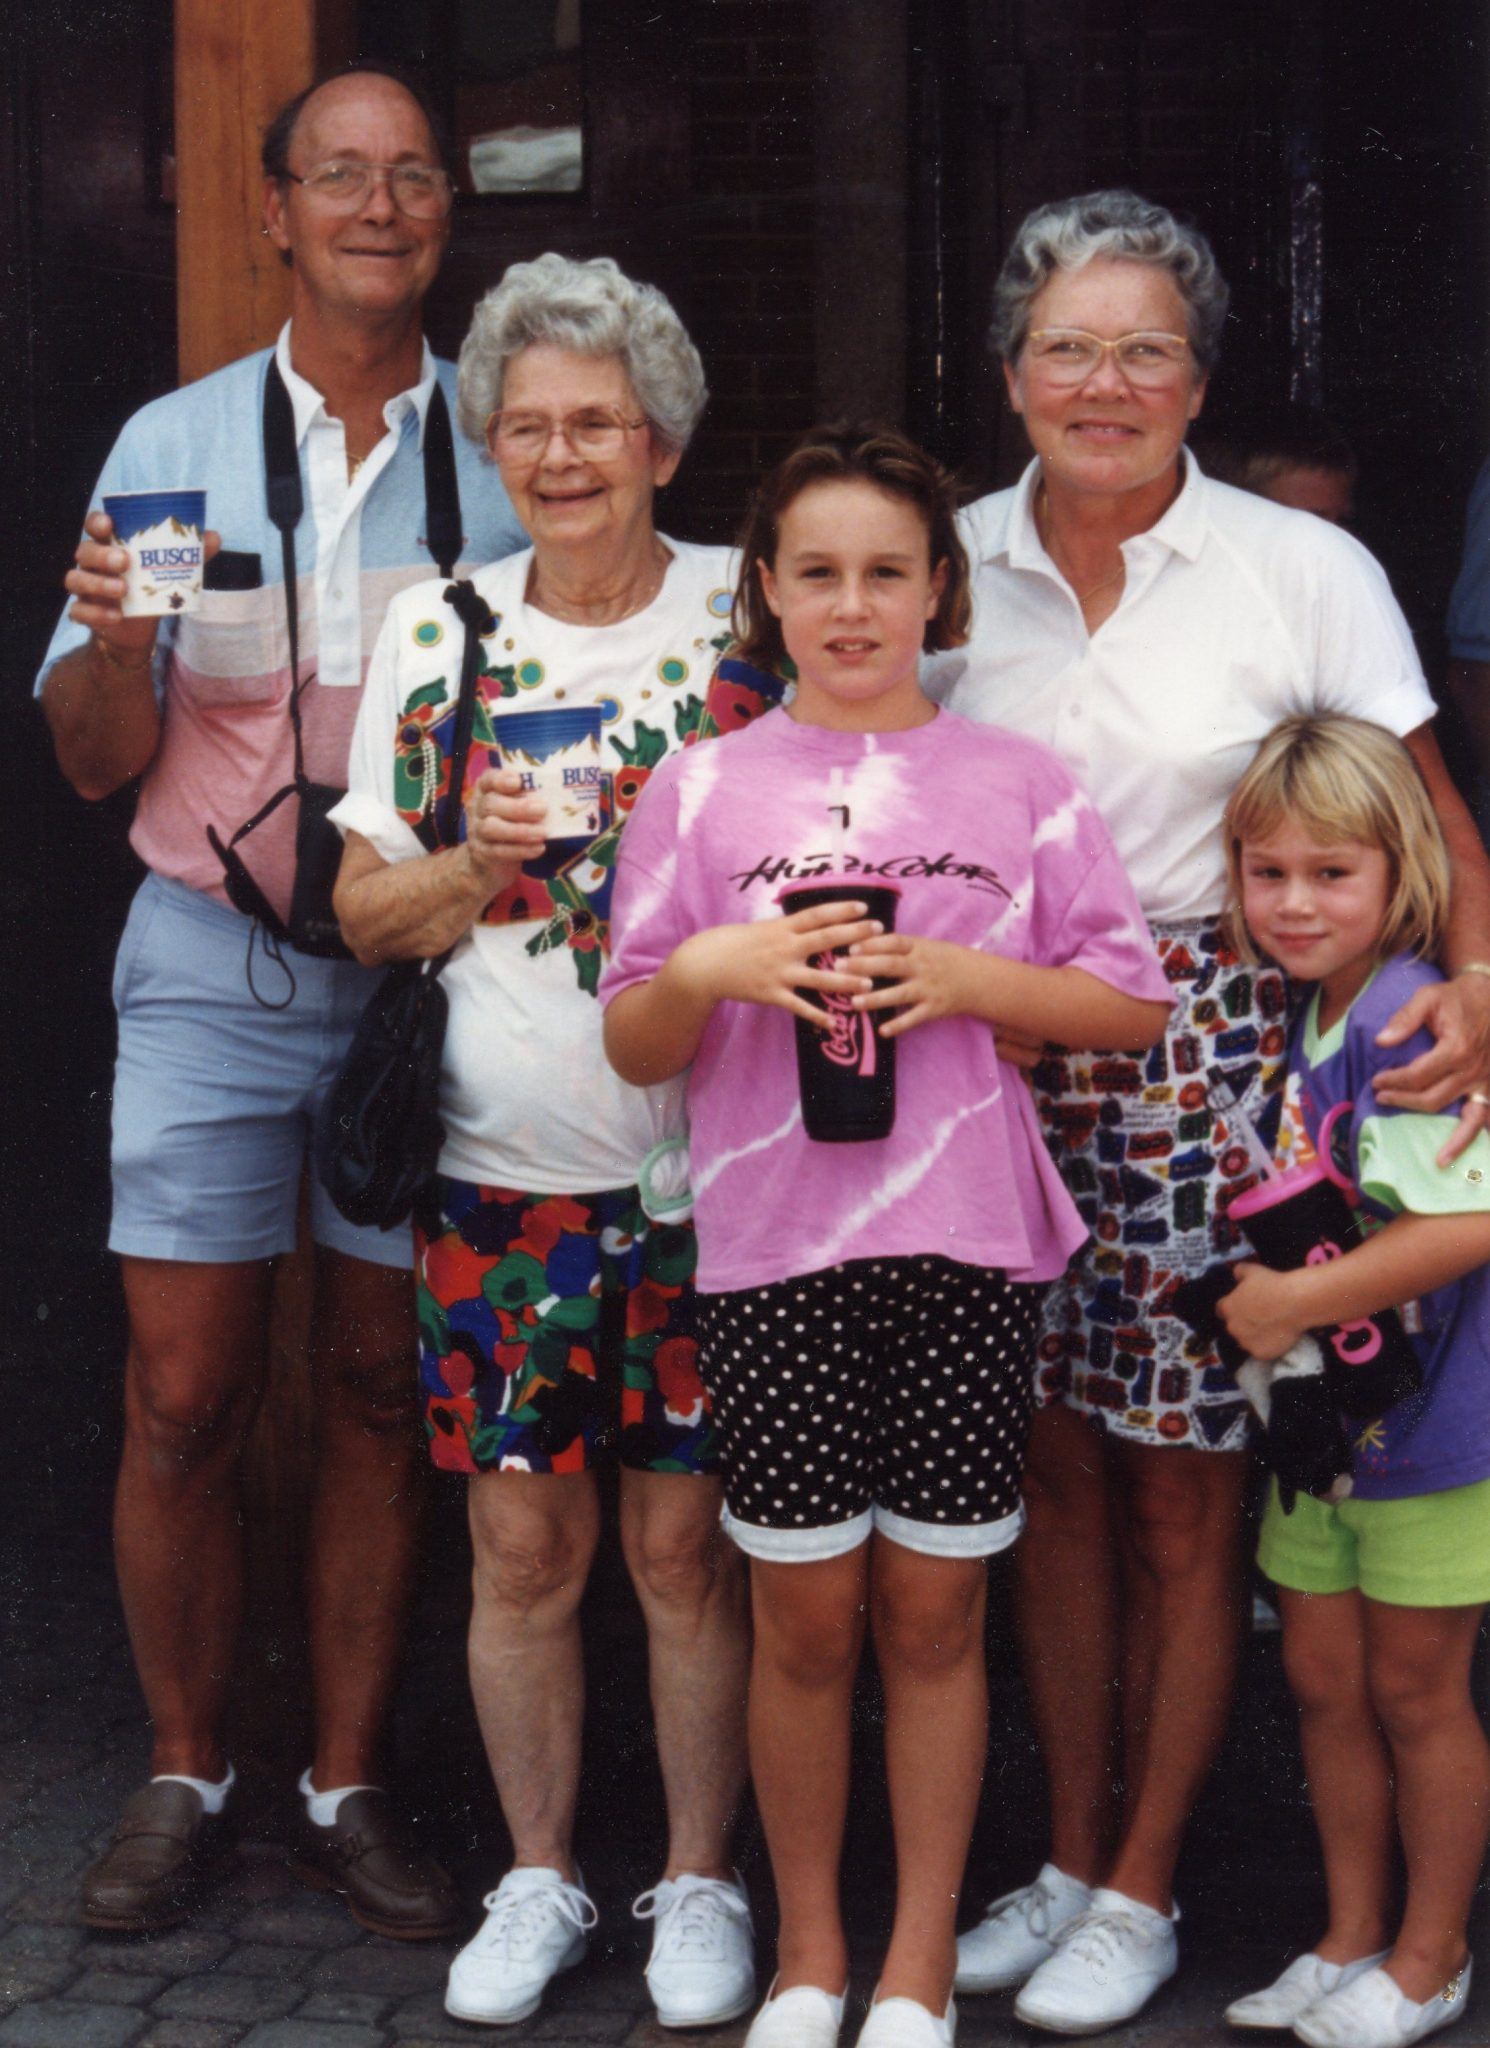 Grants Farm with Chuck, Irene, Margery Myers, Carrie and Kelly (1991)